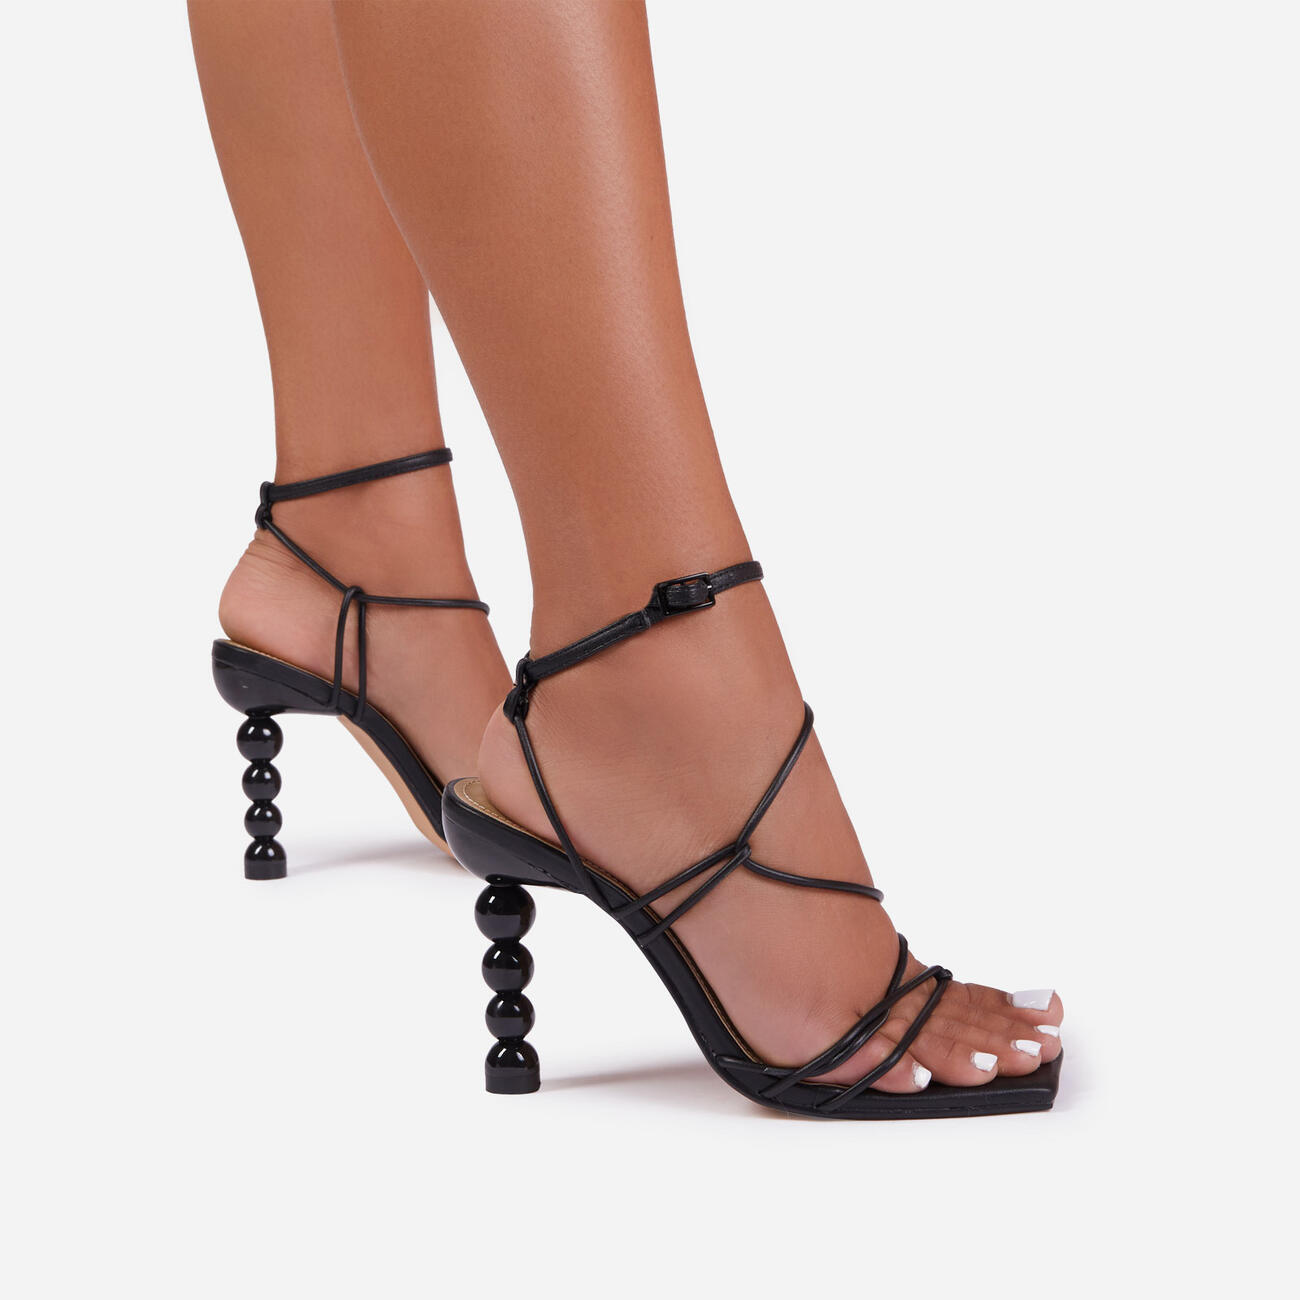 Mulberry Strappy Square Toe Sculptured Heel In Black Faux Leather Image 2